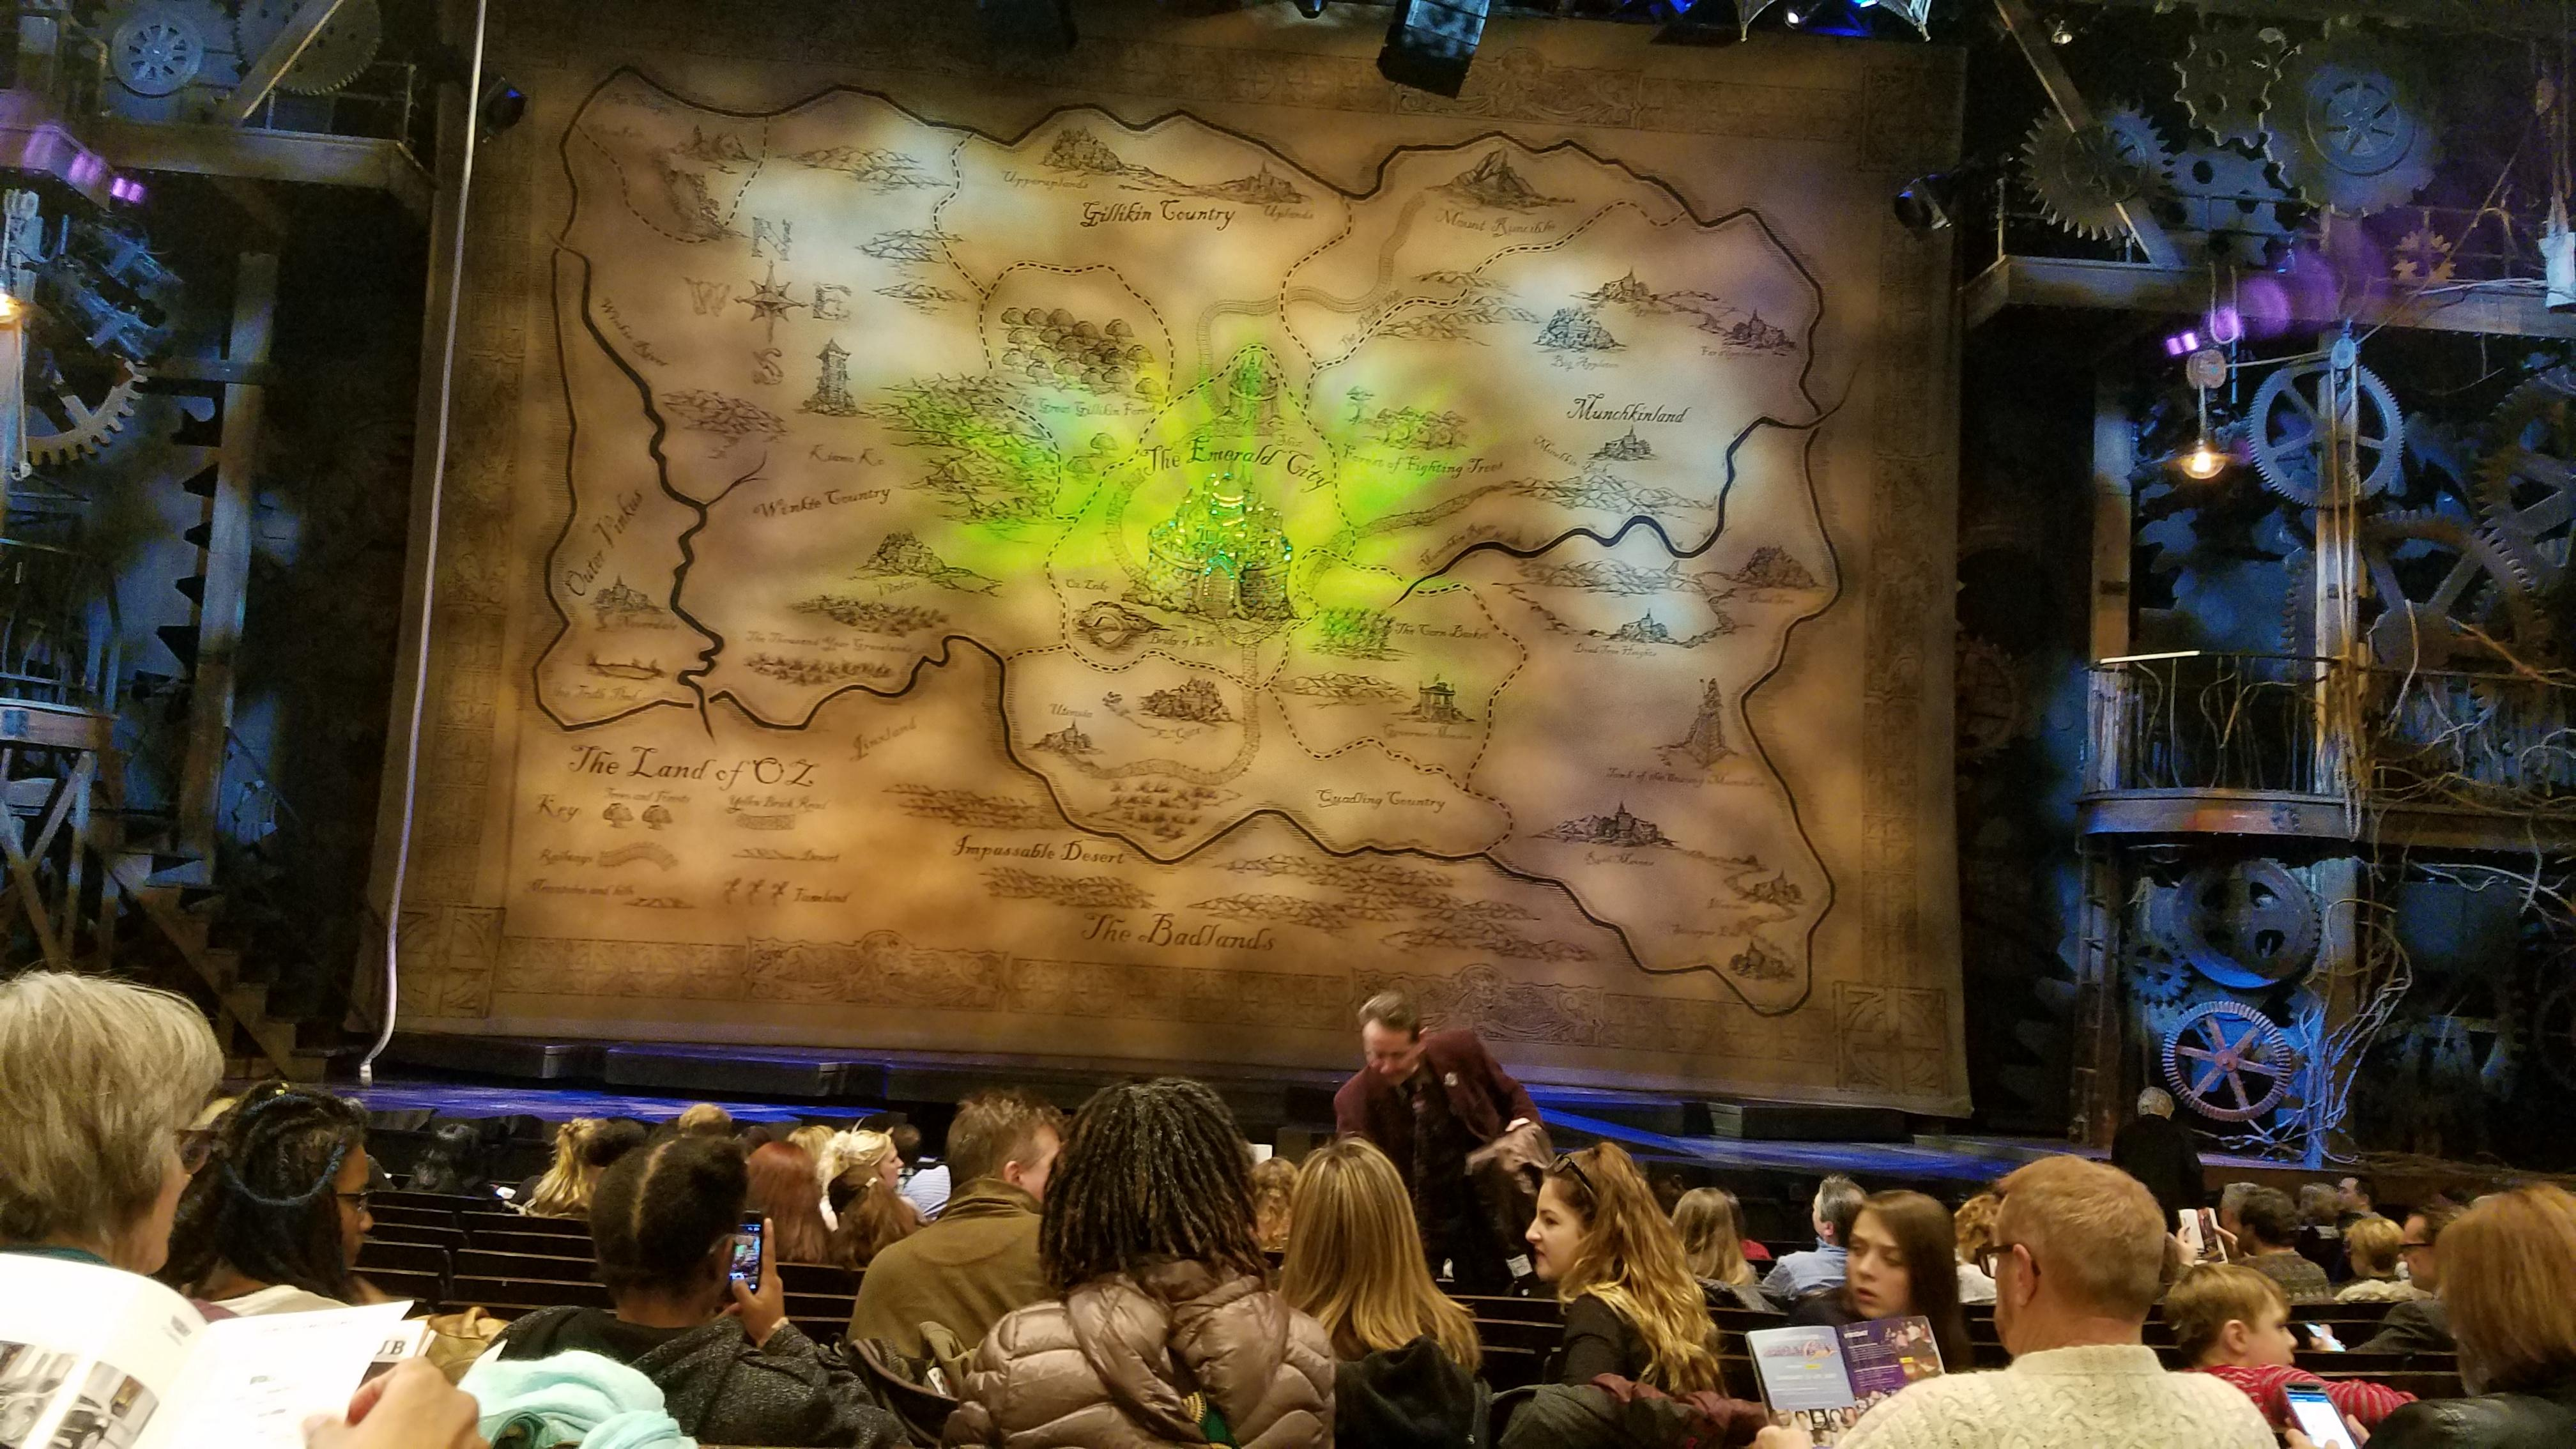 Gershwin Theatre Section Orchestra C Row H Seat 110